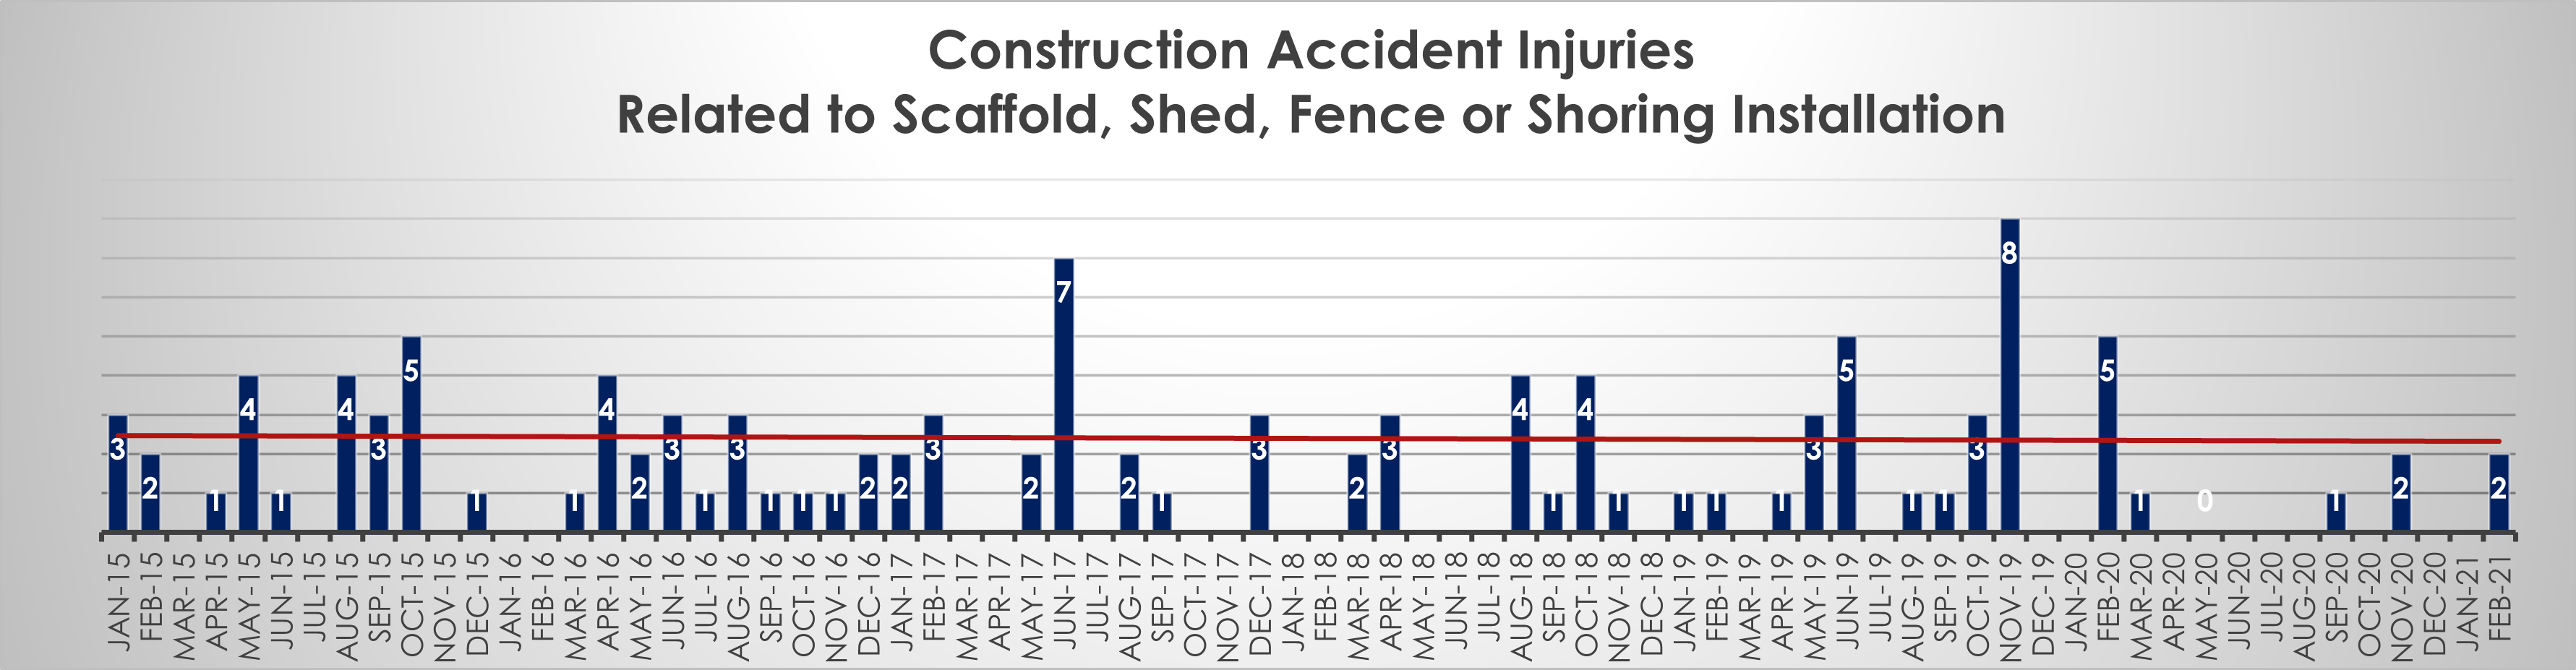 scaffolding accident injuries nyc february 21